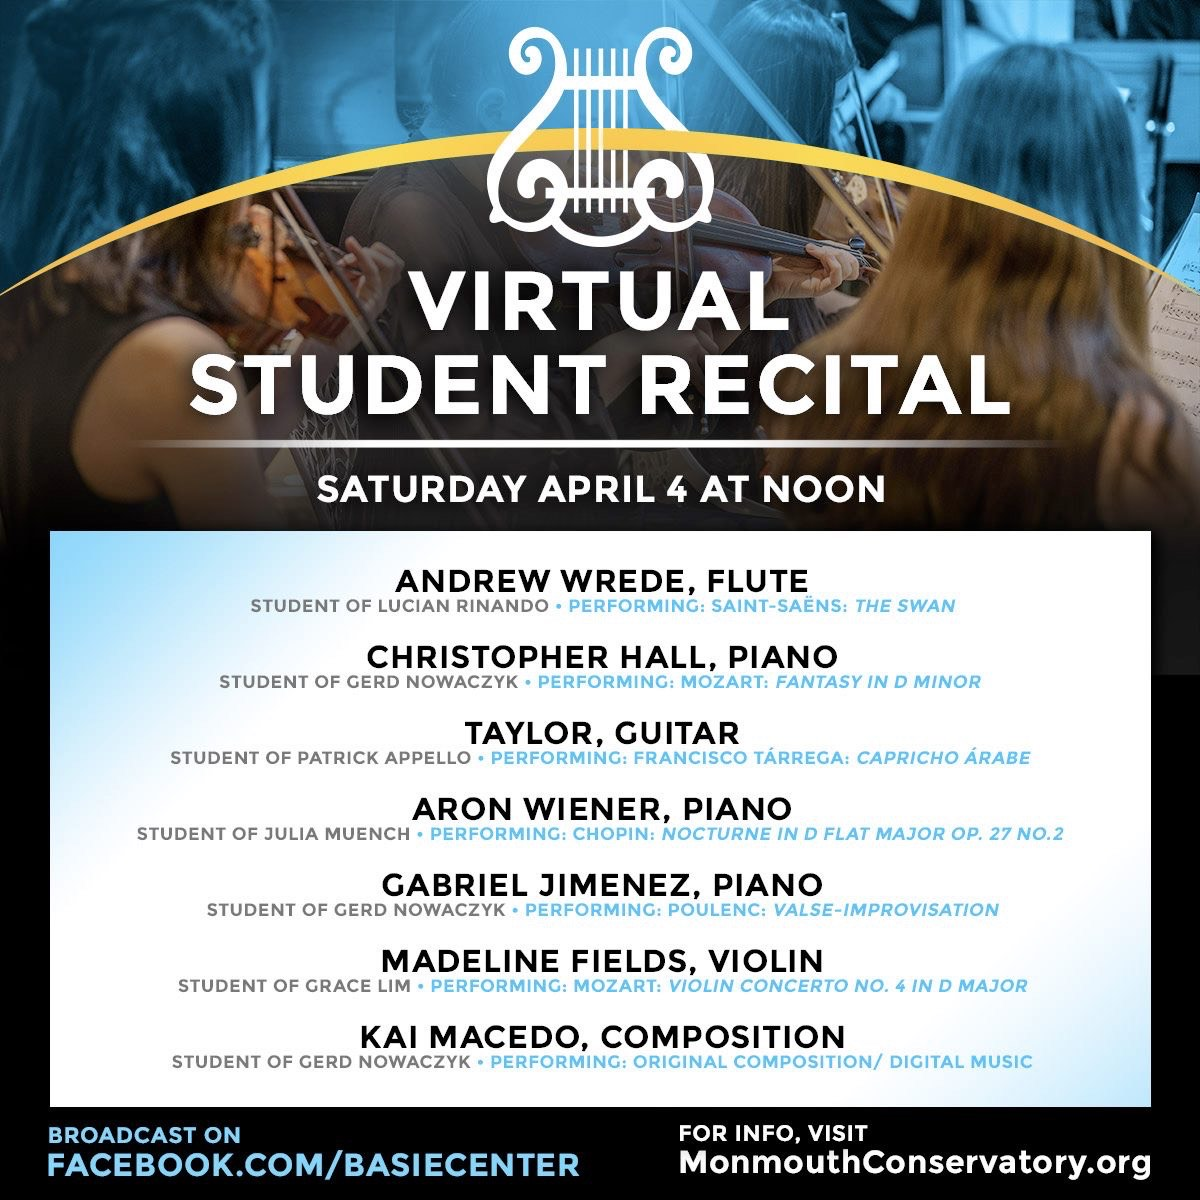 Virtual Student Recital – Watch On Facebook Live